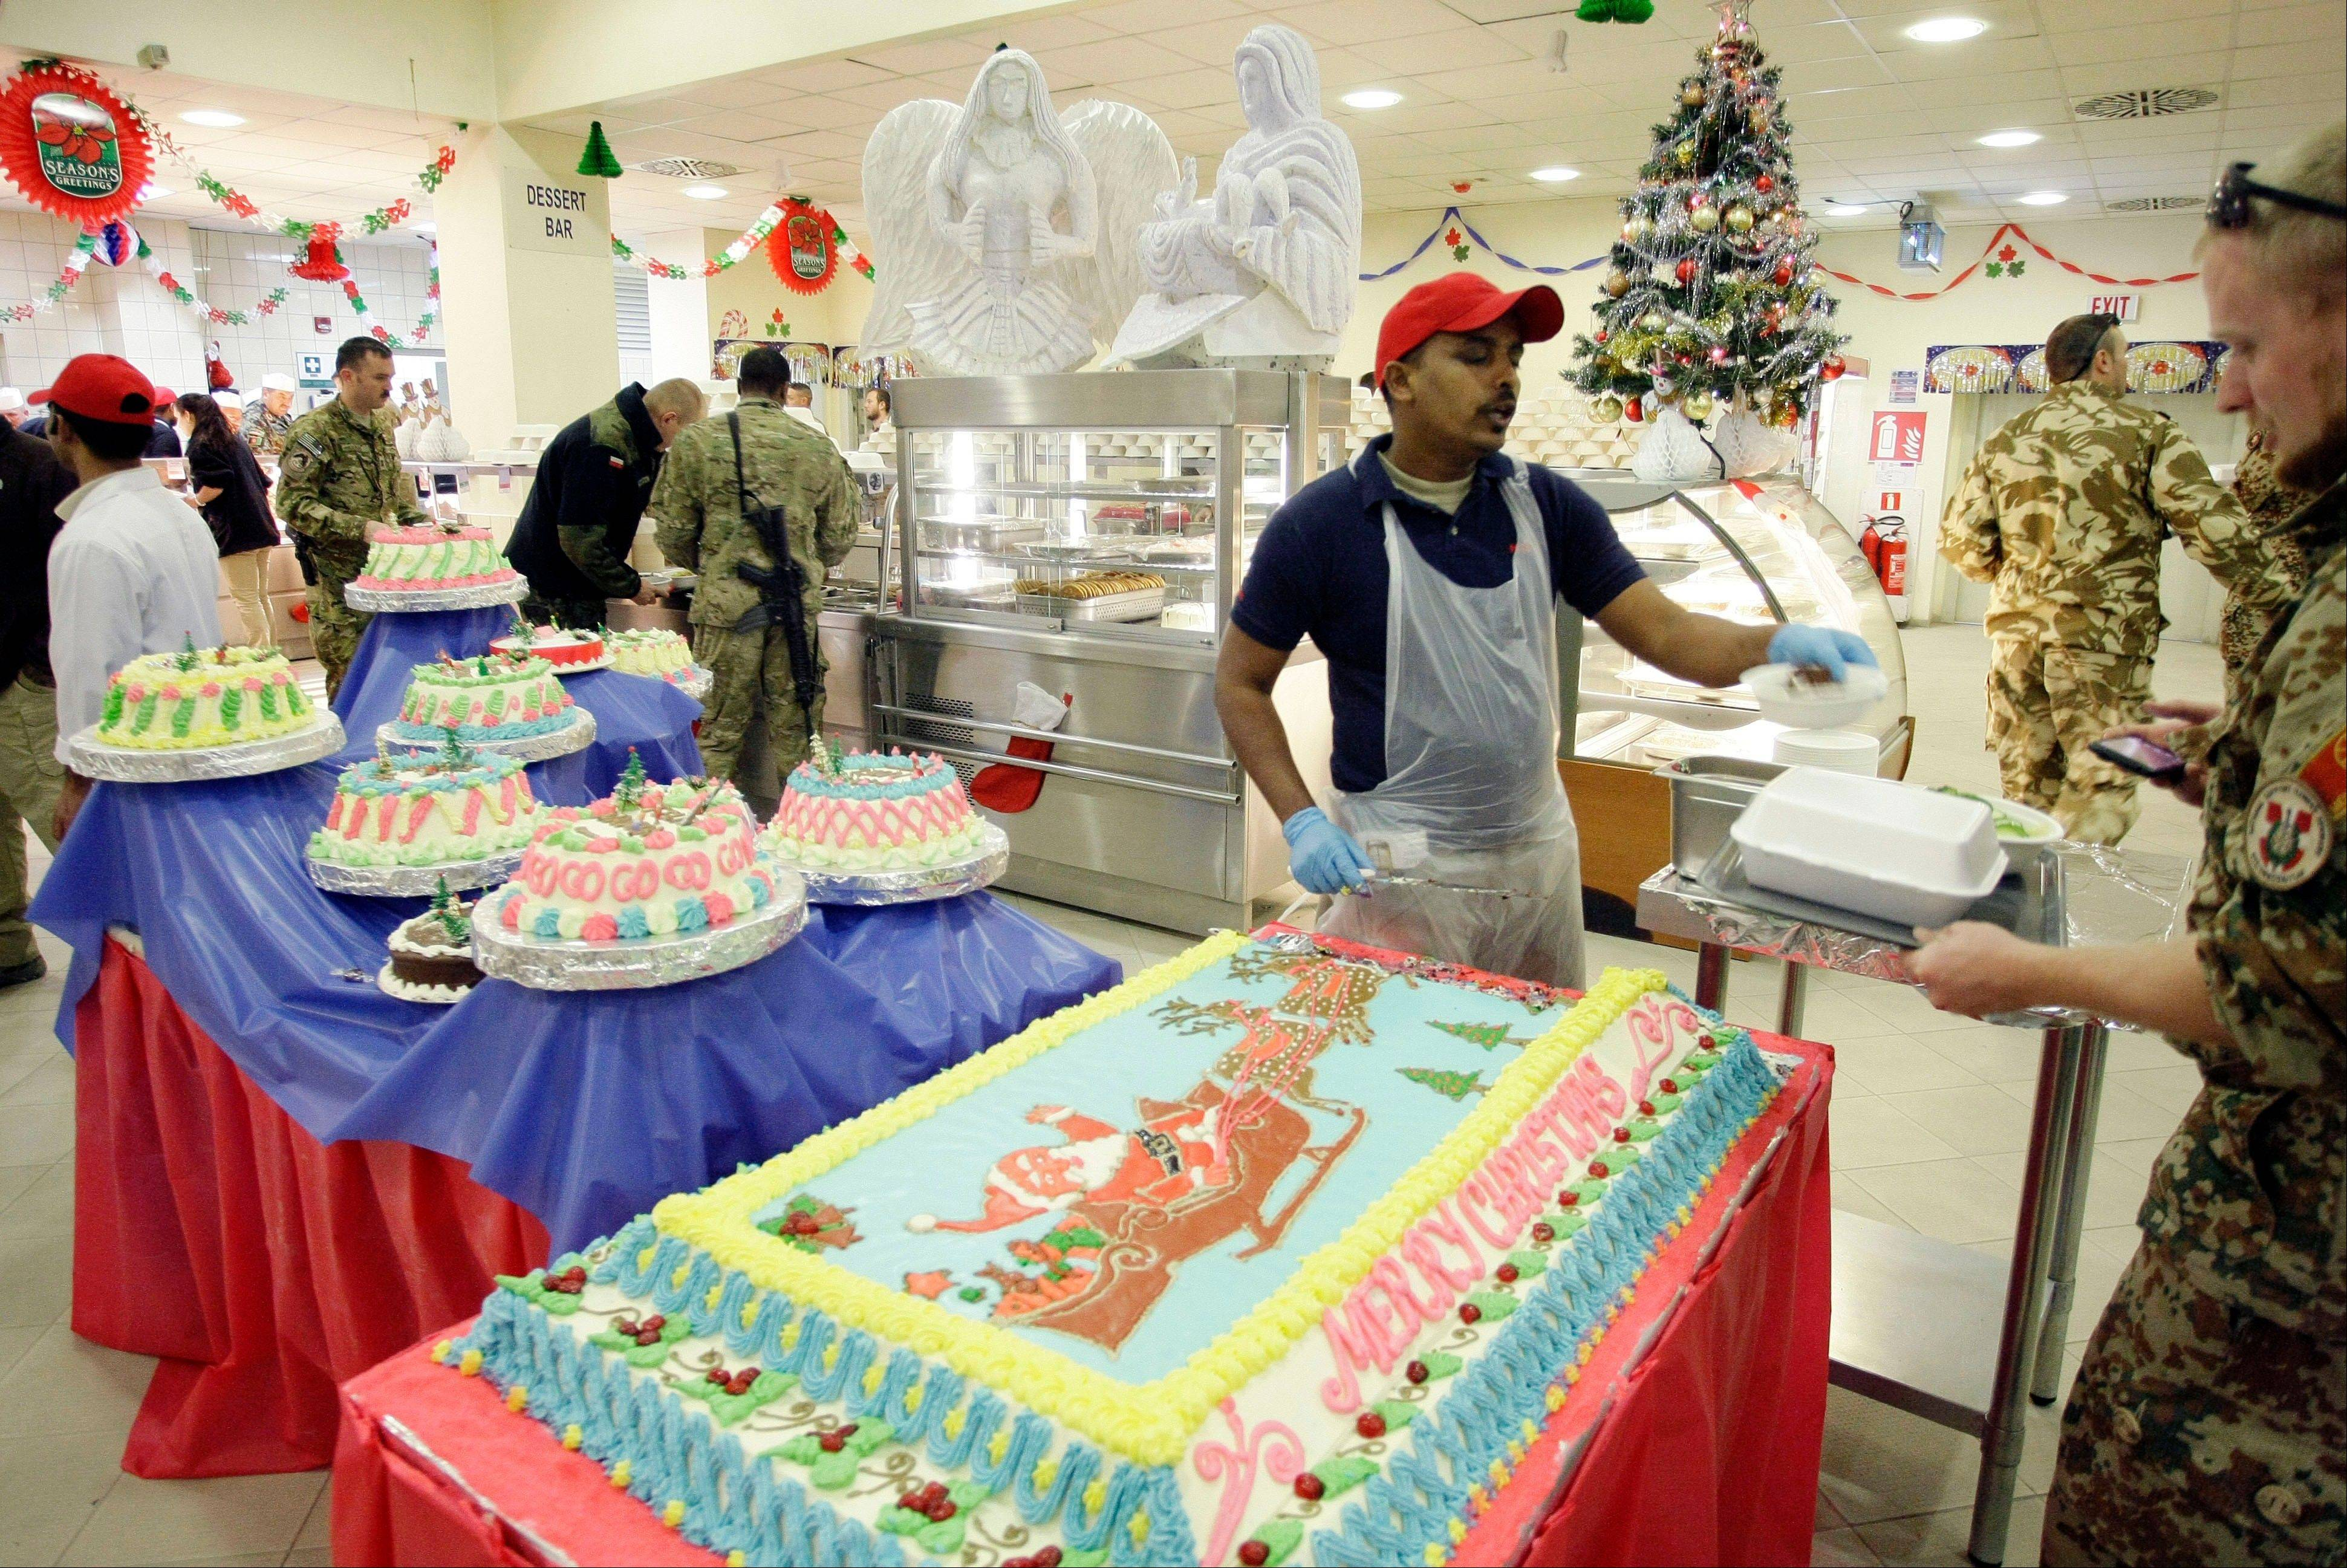 A worker, center, serves cake to a soldier with the NATO-led International Security Assistance Force (ISAF) during Christmas dinner at a dining facility at the U.S.-led coalition base in Kabul, Afghanistan, Tuesday, Dec. 25, 2012.